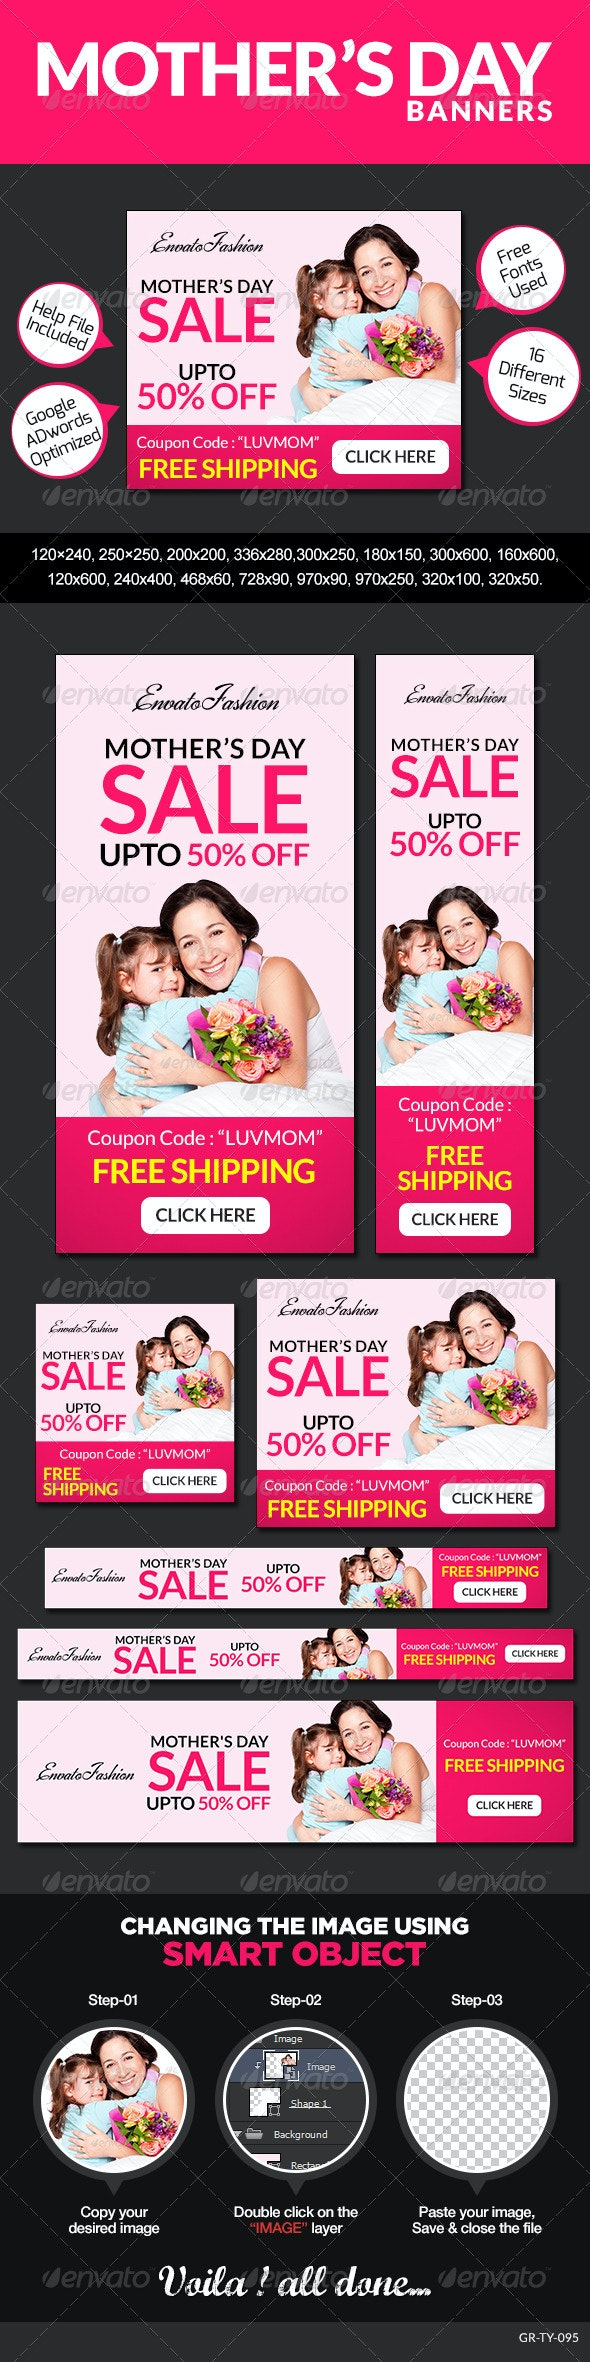 Mother's Day Banners - Banners & Ads Web Elements